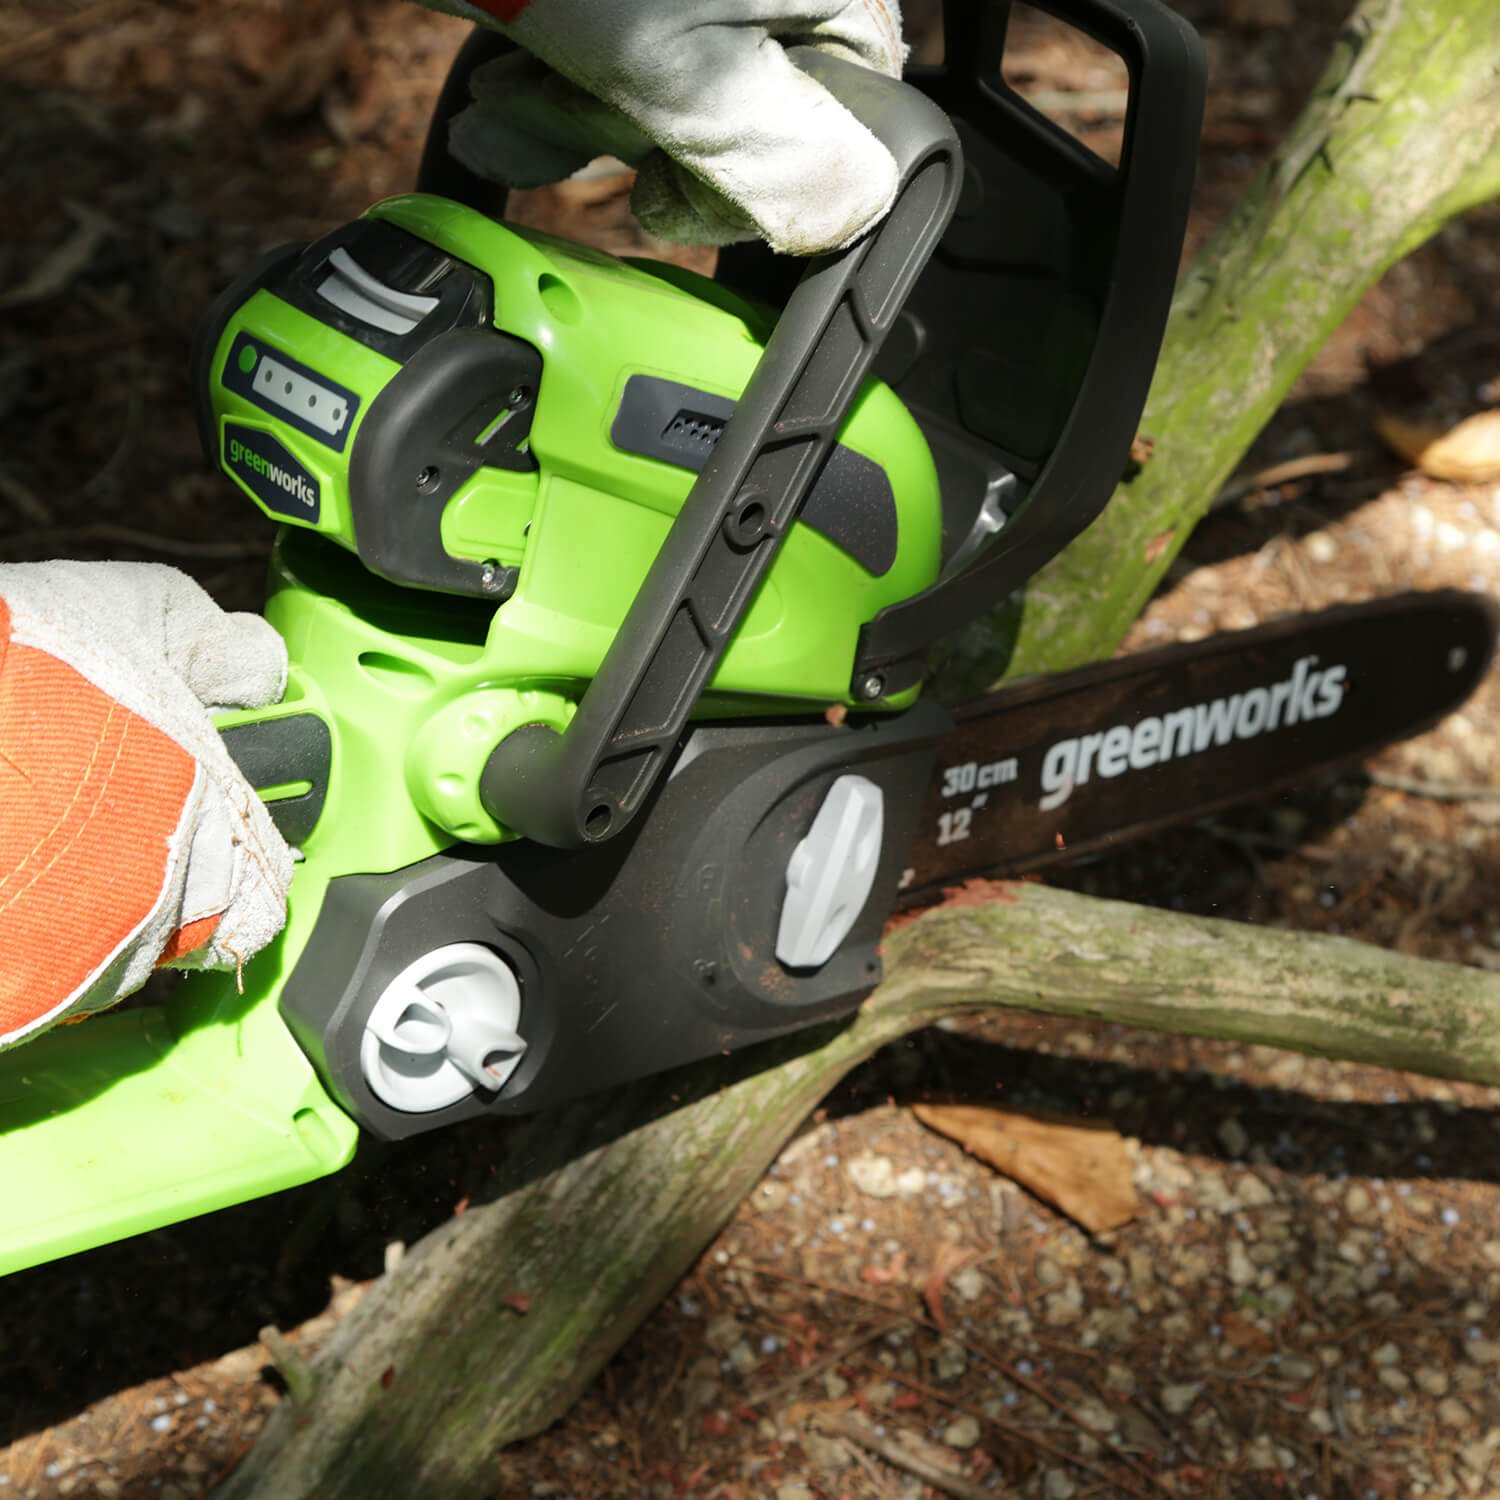 Greenworks 20262 Chainsaws product image 3